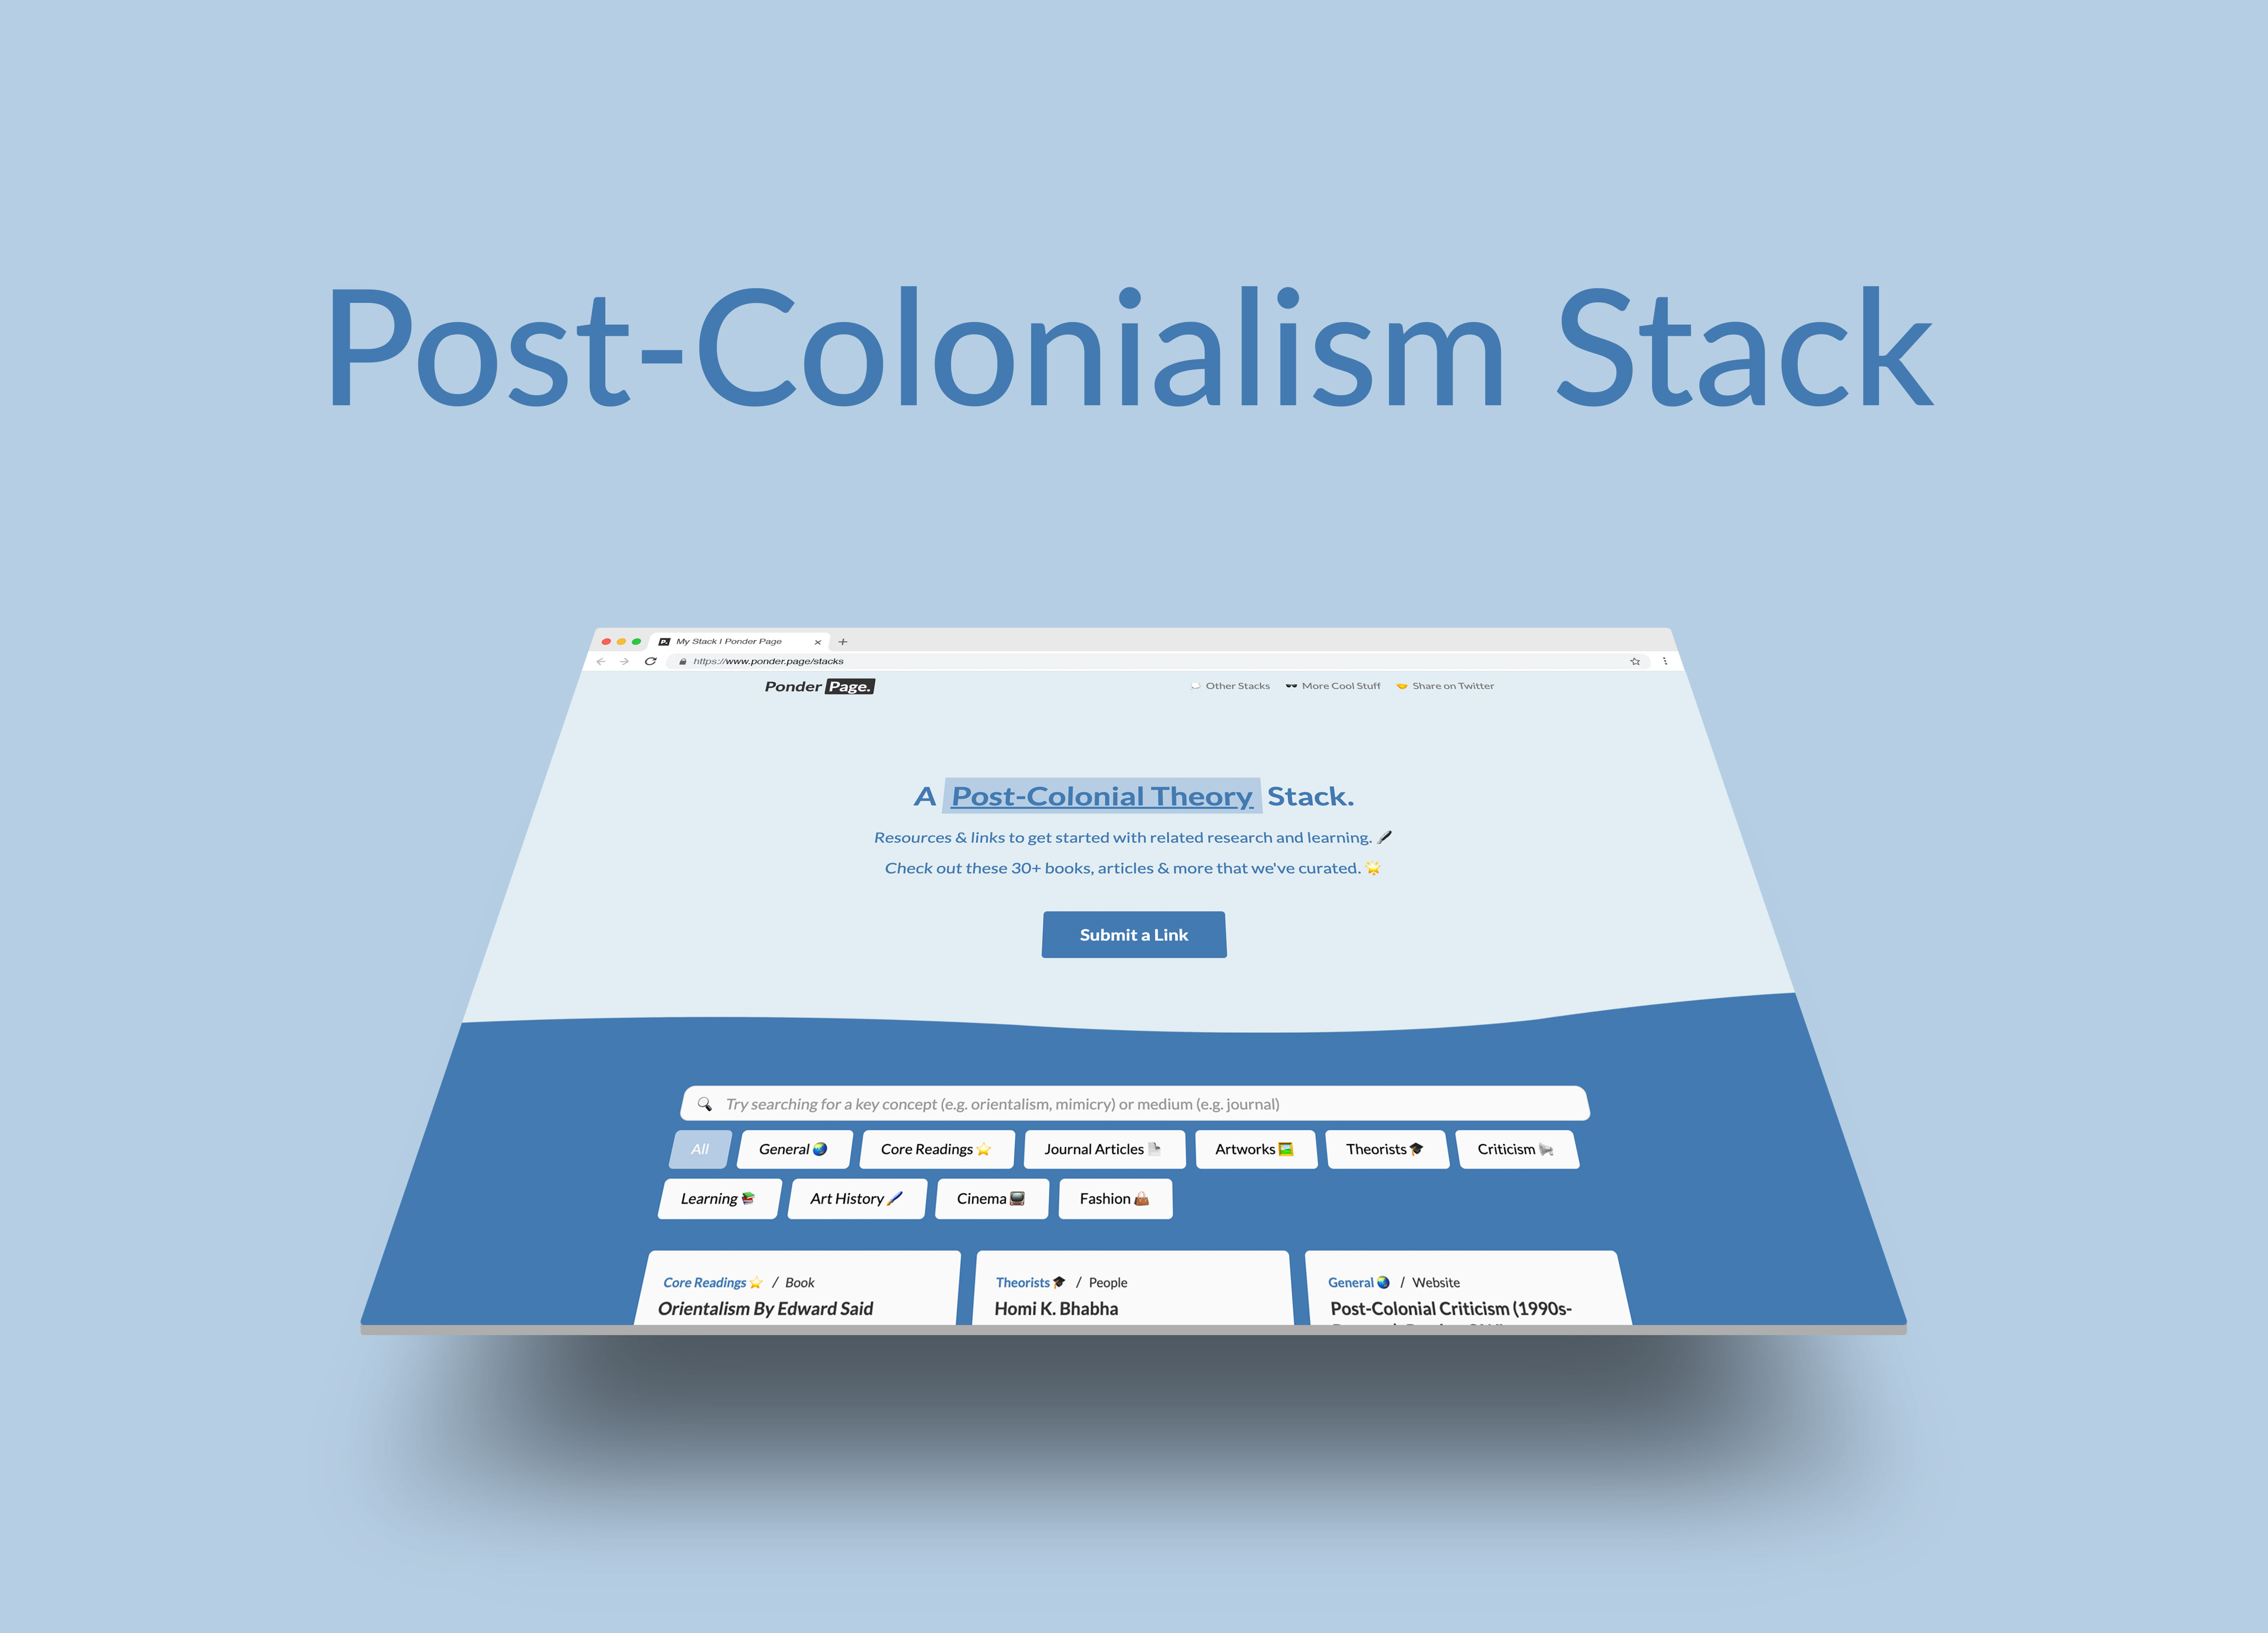 Mockup and link to Post-Colonial Theory stacks.